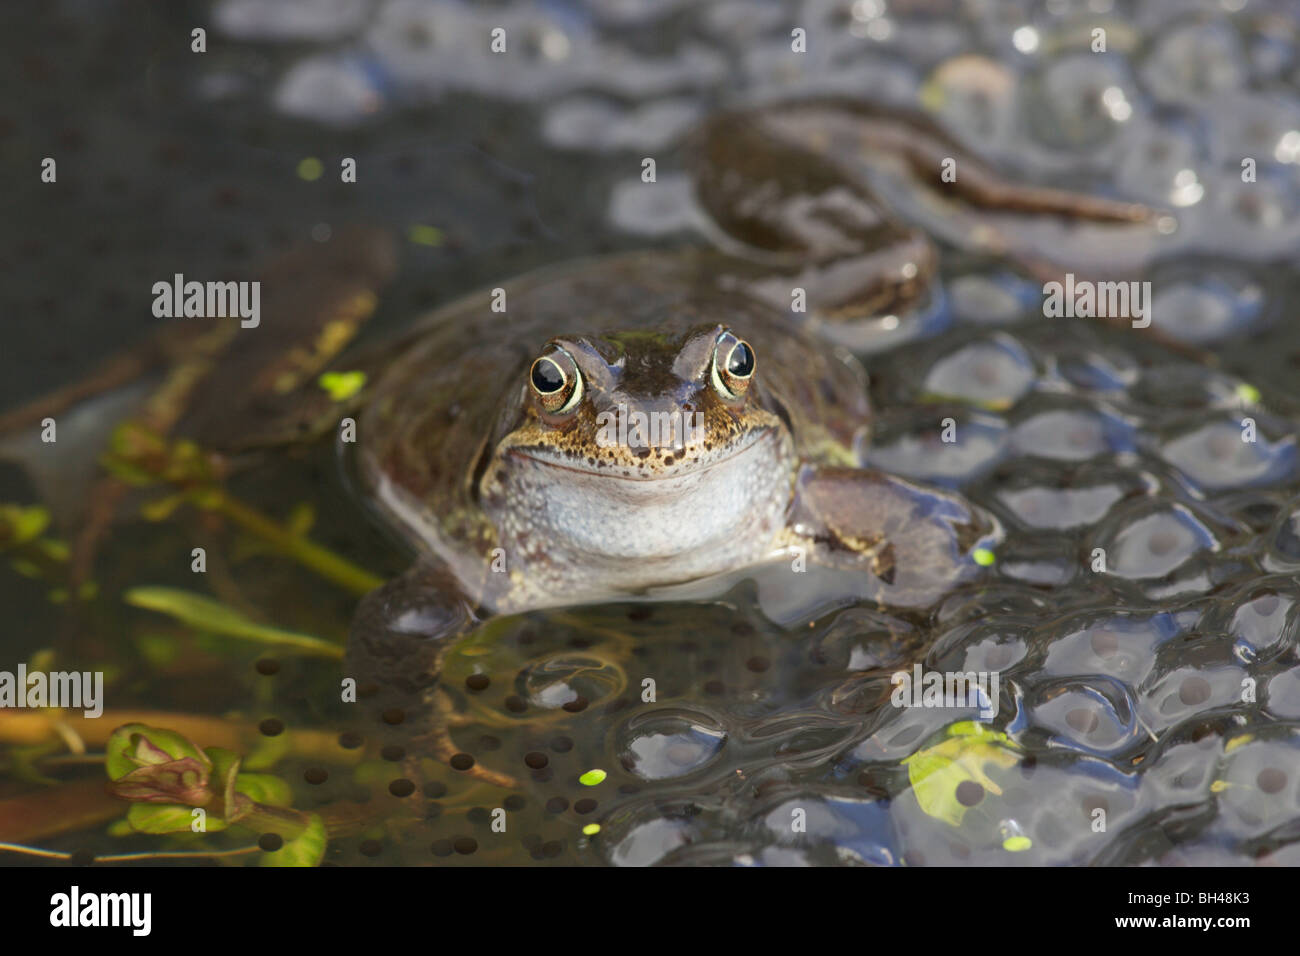 Common frog (Rana temporaria) male with frogspawn. - Stock Image